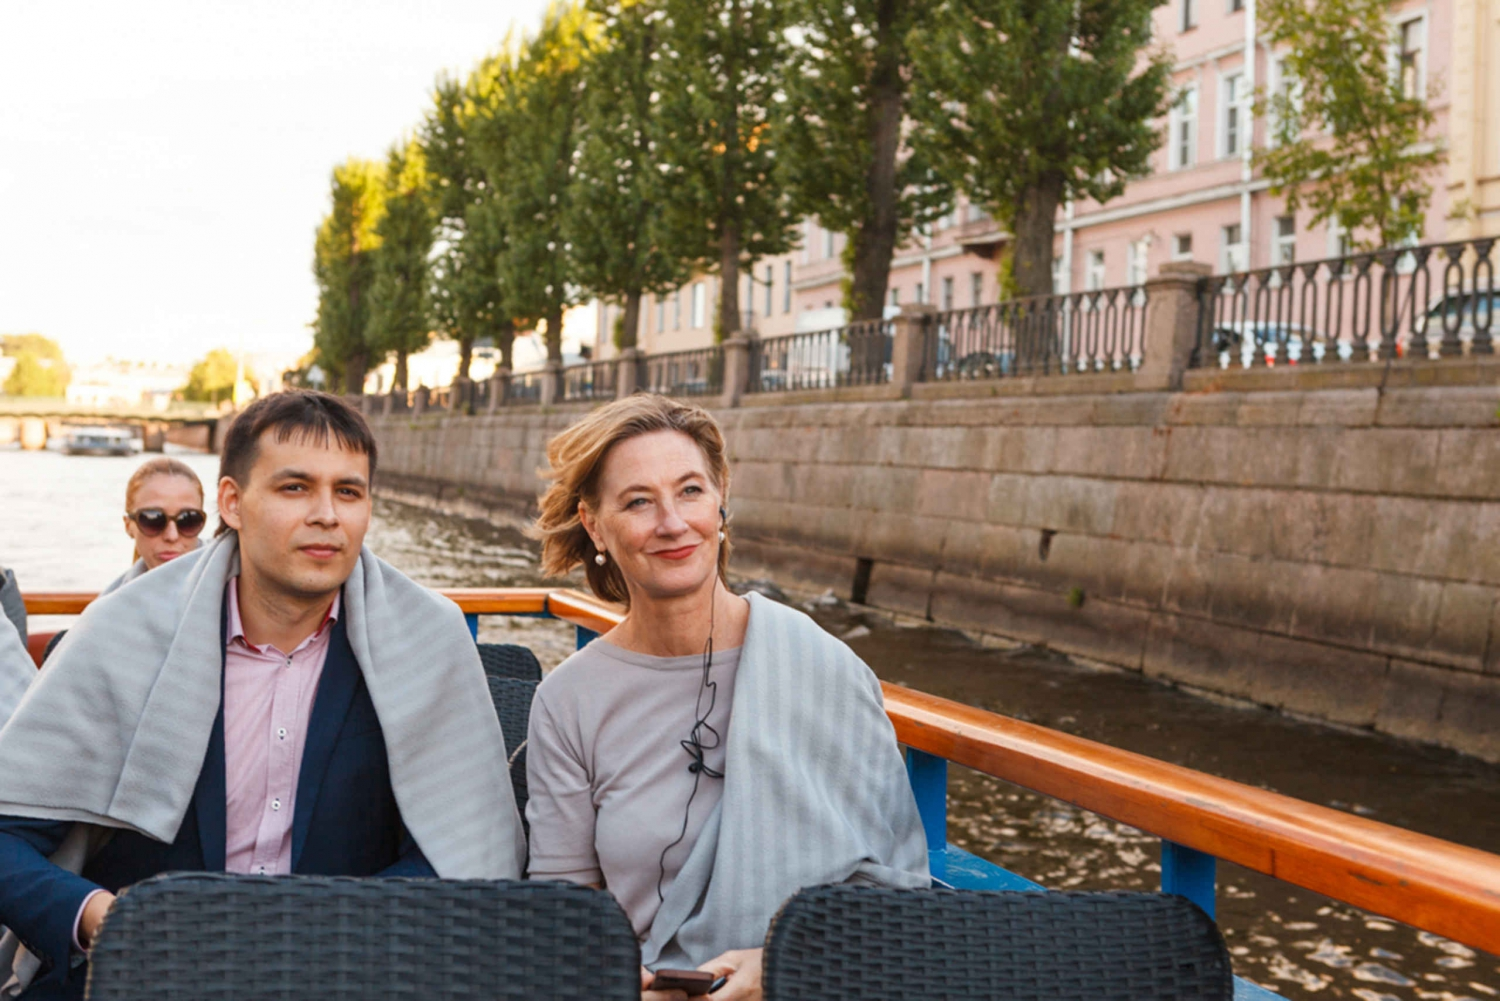 Canal and River Cruise with Faberge Option